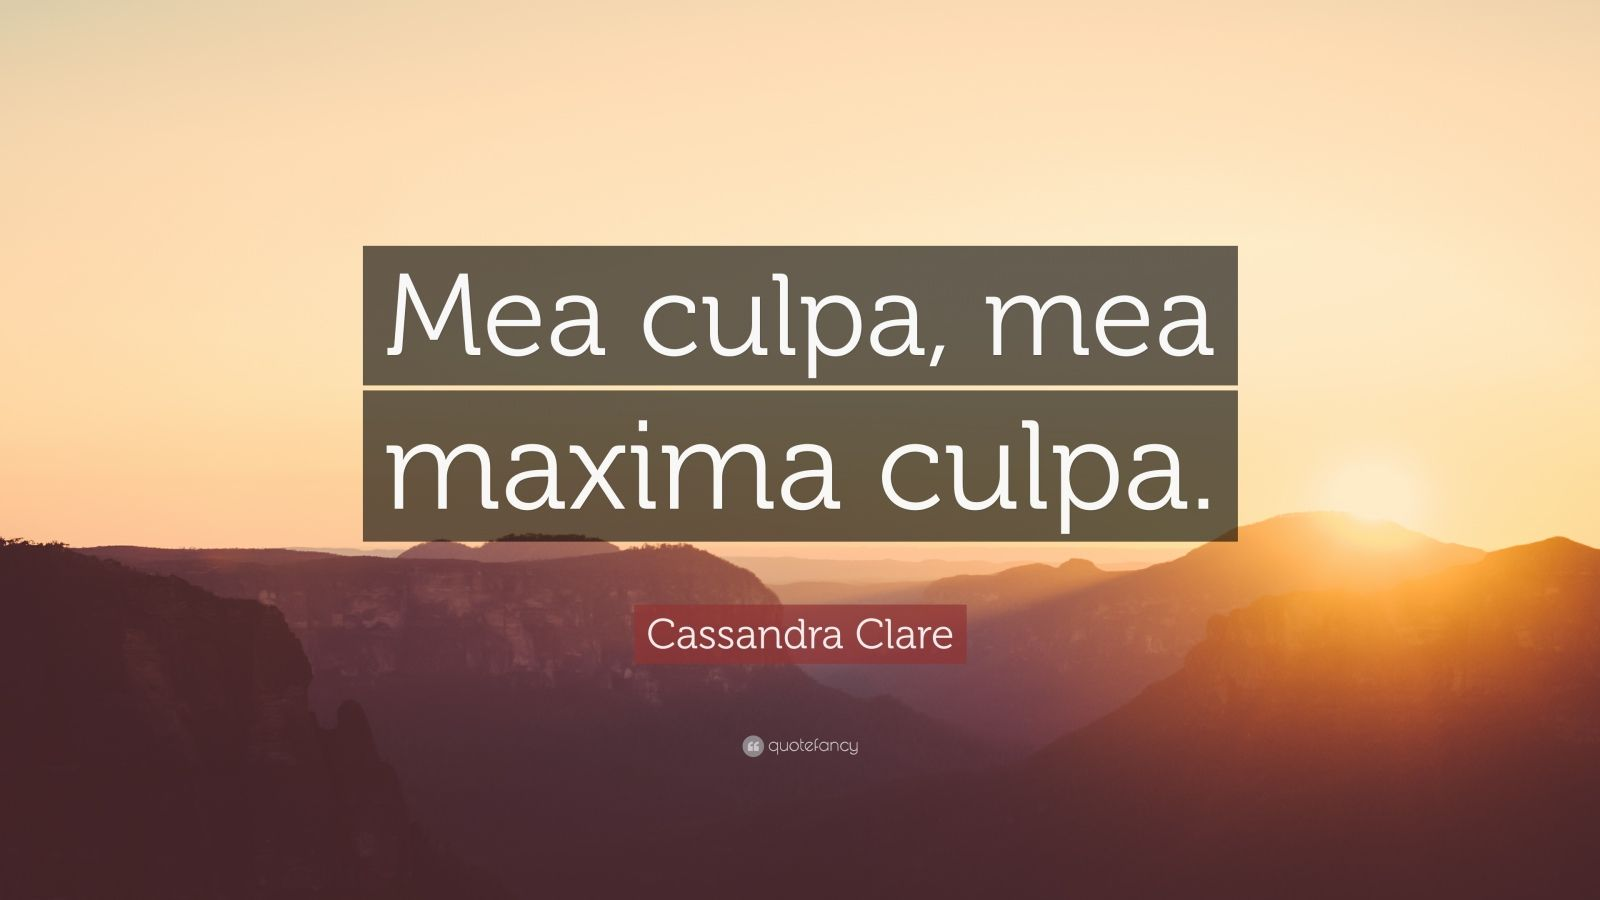 Beautiful Wallpapers With Inspirational Quotes Cassandra Clare Quote Mea Culpa Mea Maxima Culpa 12